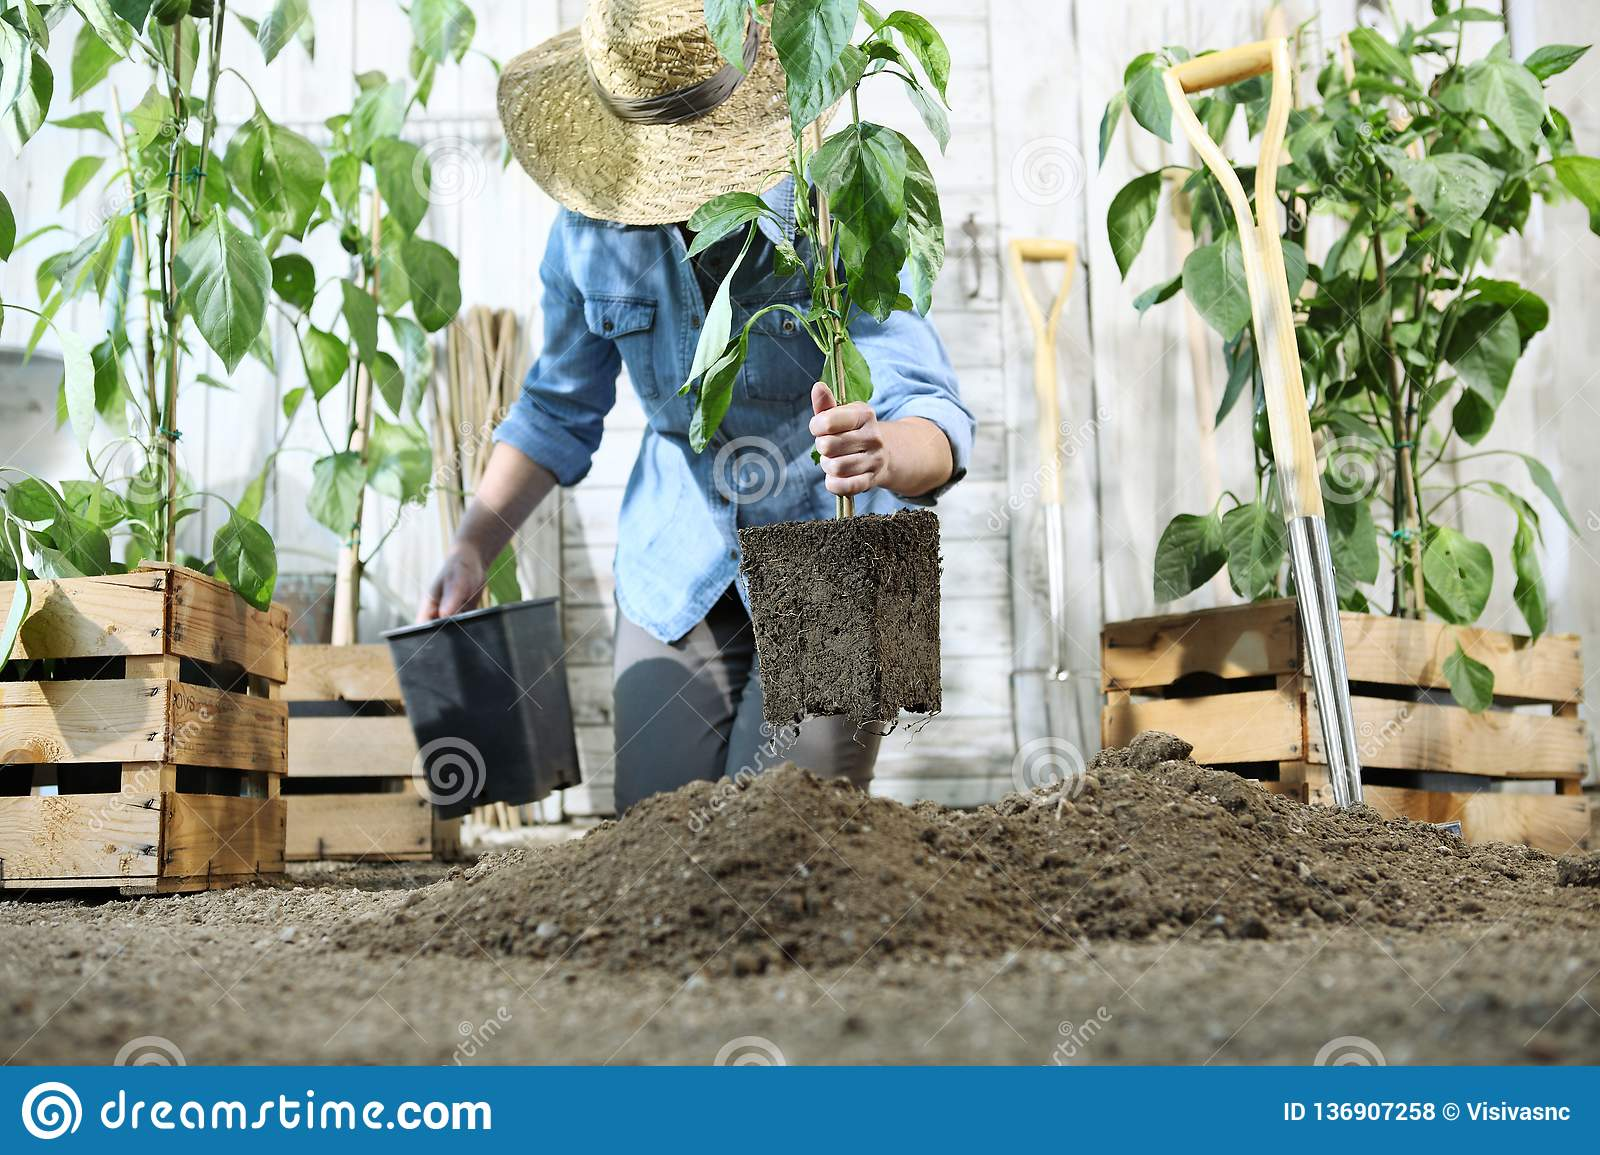 Woman work in the vegetable garden with hands repot and planting a young plant on soil, take care for plant growth